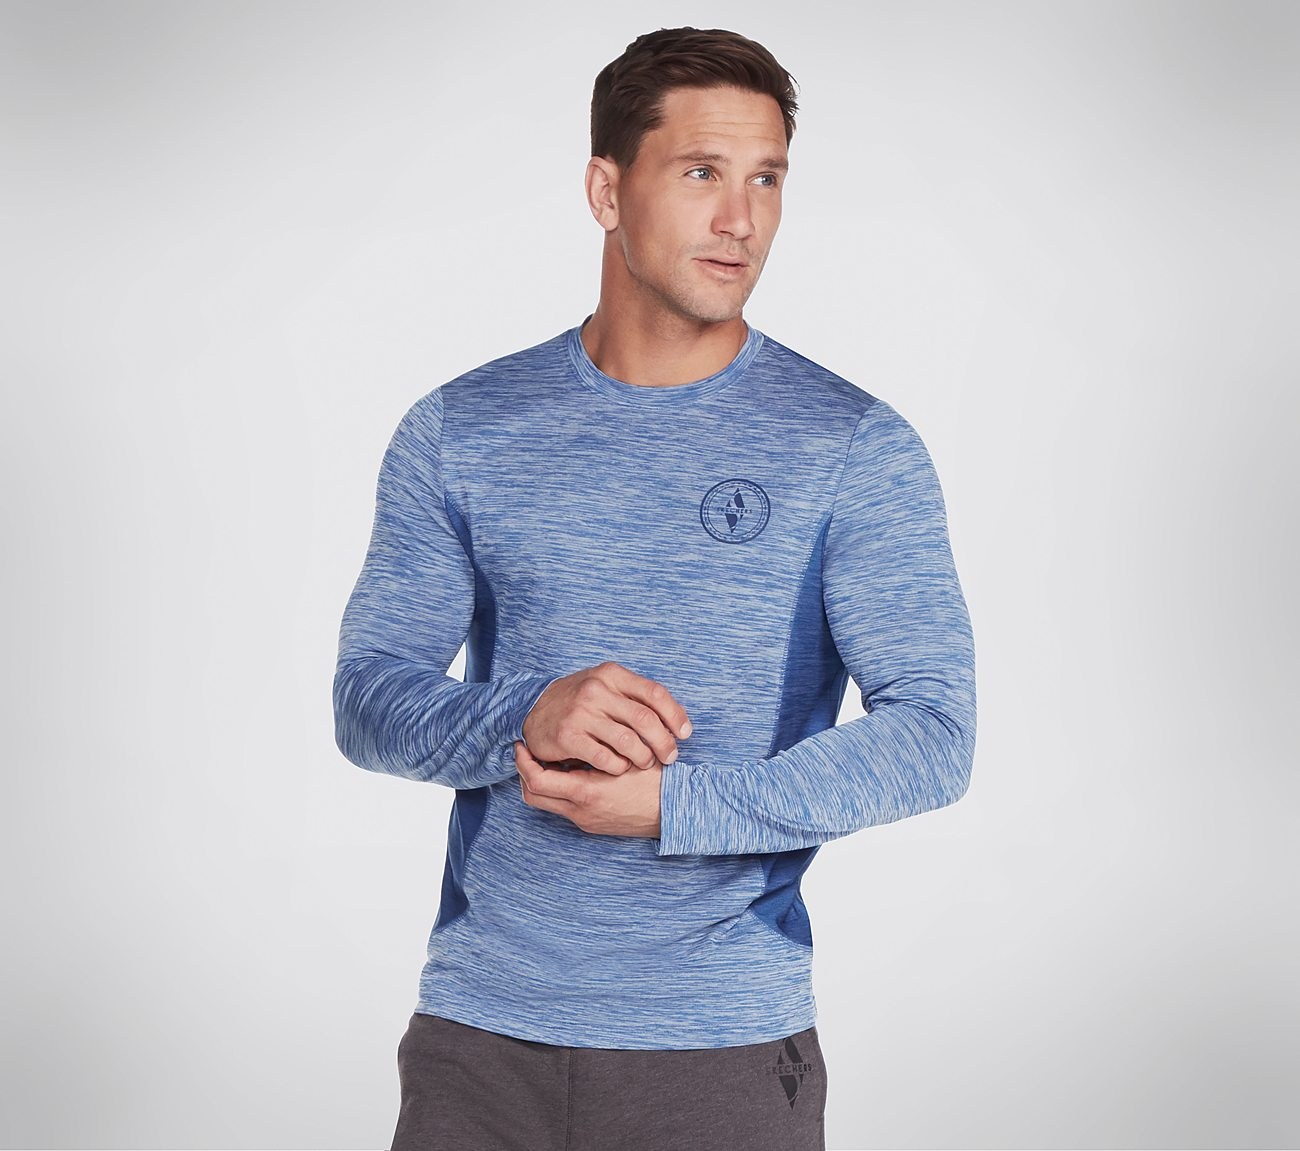 Skechers Apparel Range Long Sleeve Tech Tee Shirt